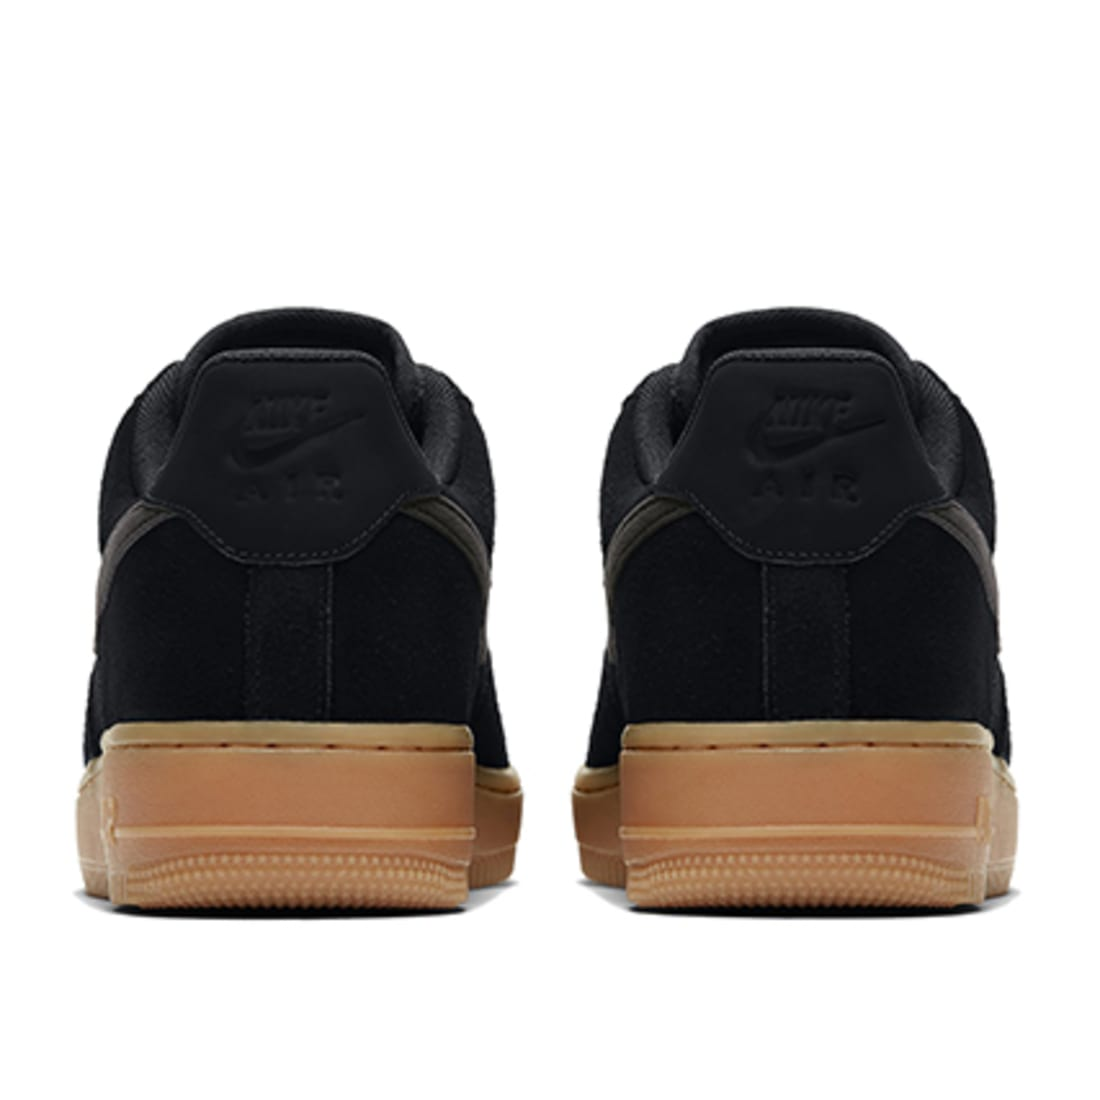 Nike Baskets Air Force 1 07 LV8 Suede AA1117 001 Black Gum